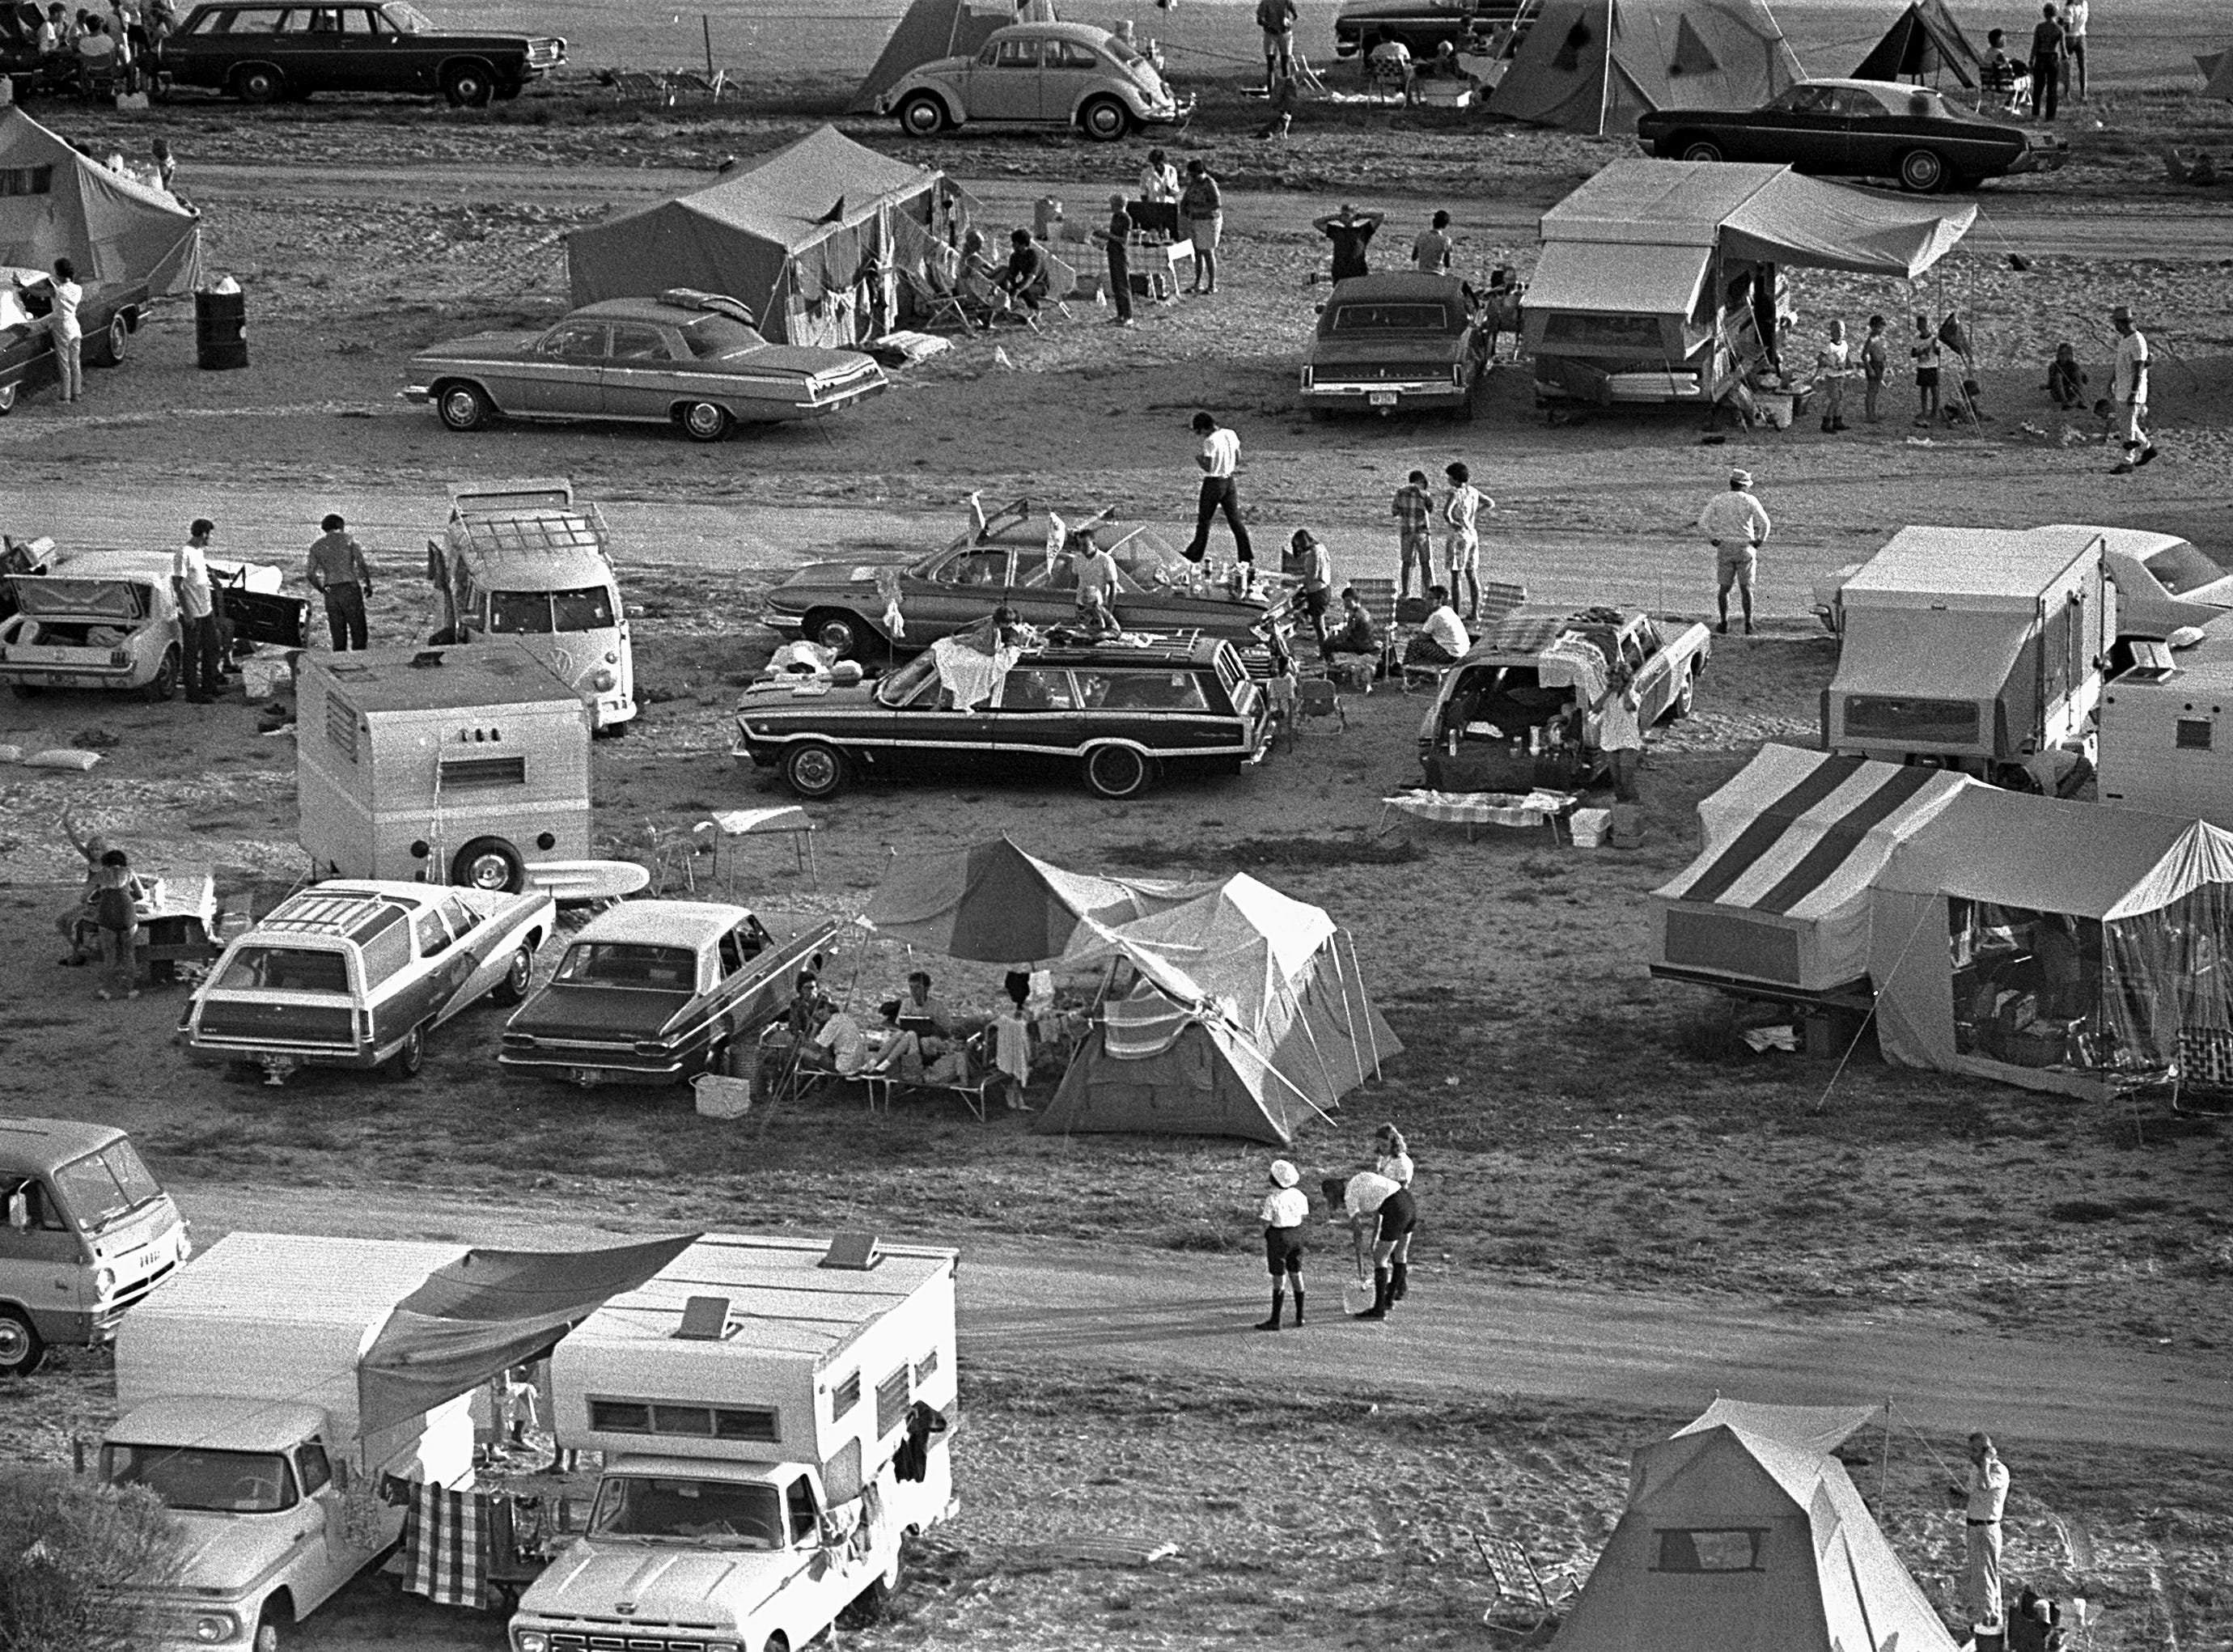 Adjacent to the Kennedy Space Center thousands of spectators camped out on beaches and roads to watch the launch of Apollo 11, which launched at 9:32 a.m. Eastern on July 16, 1969. The launch of Apollo 11 was the culmination of 8 years of hard work by thousands of scientists and technicians.